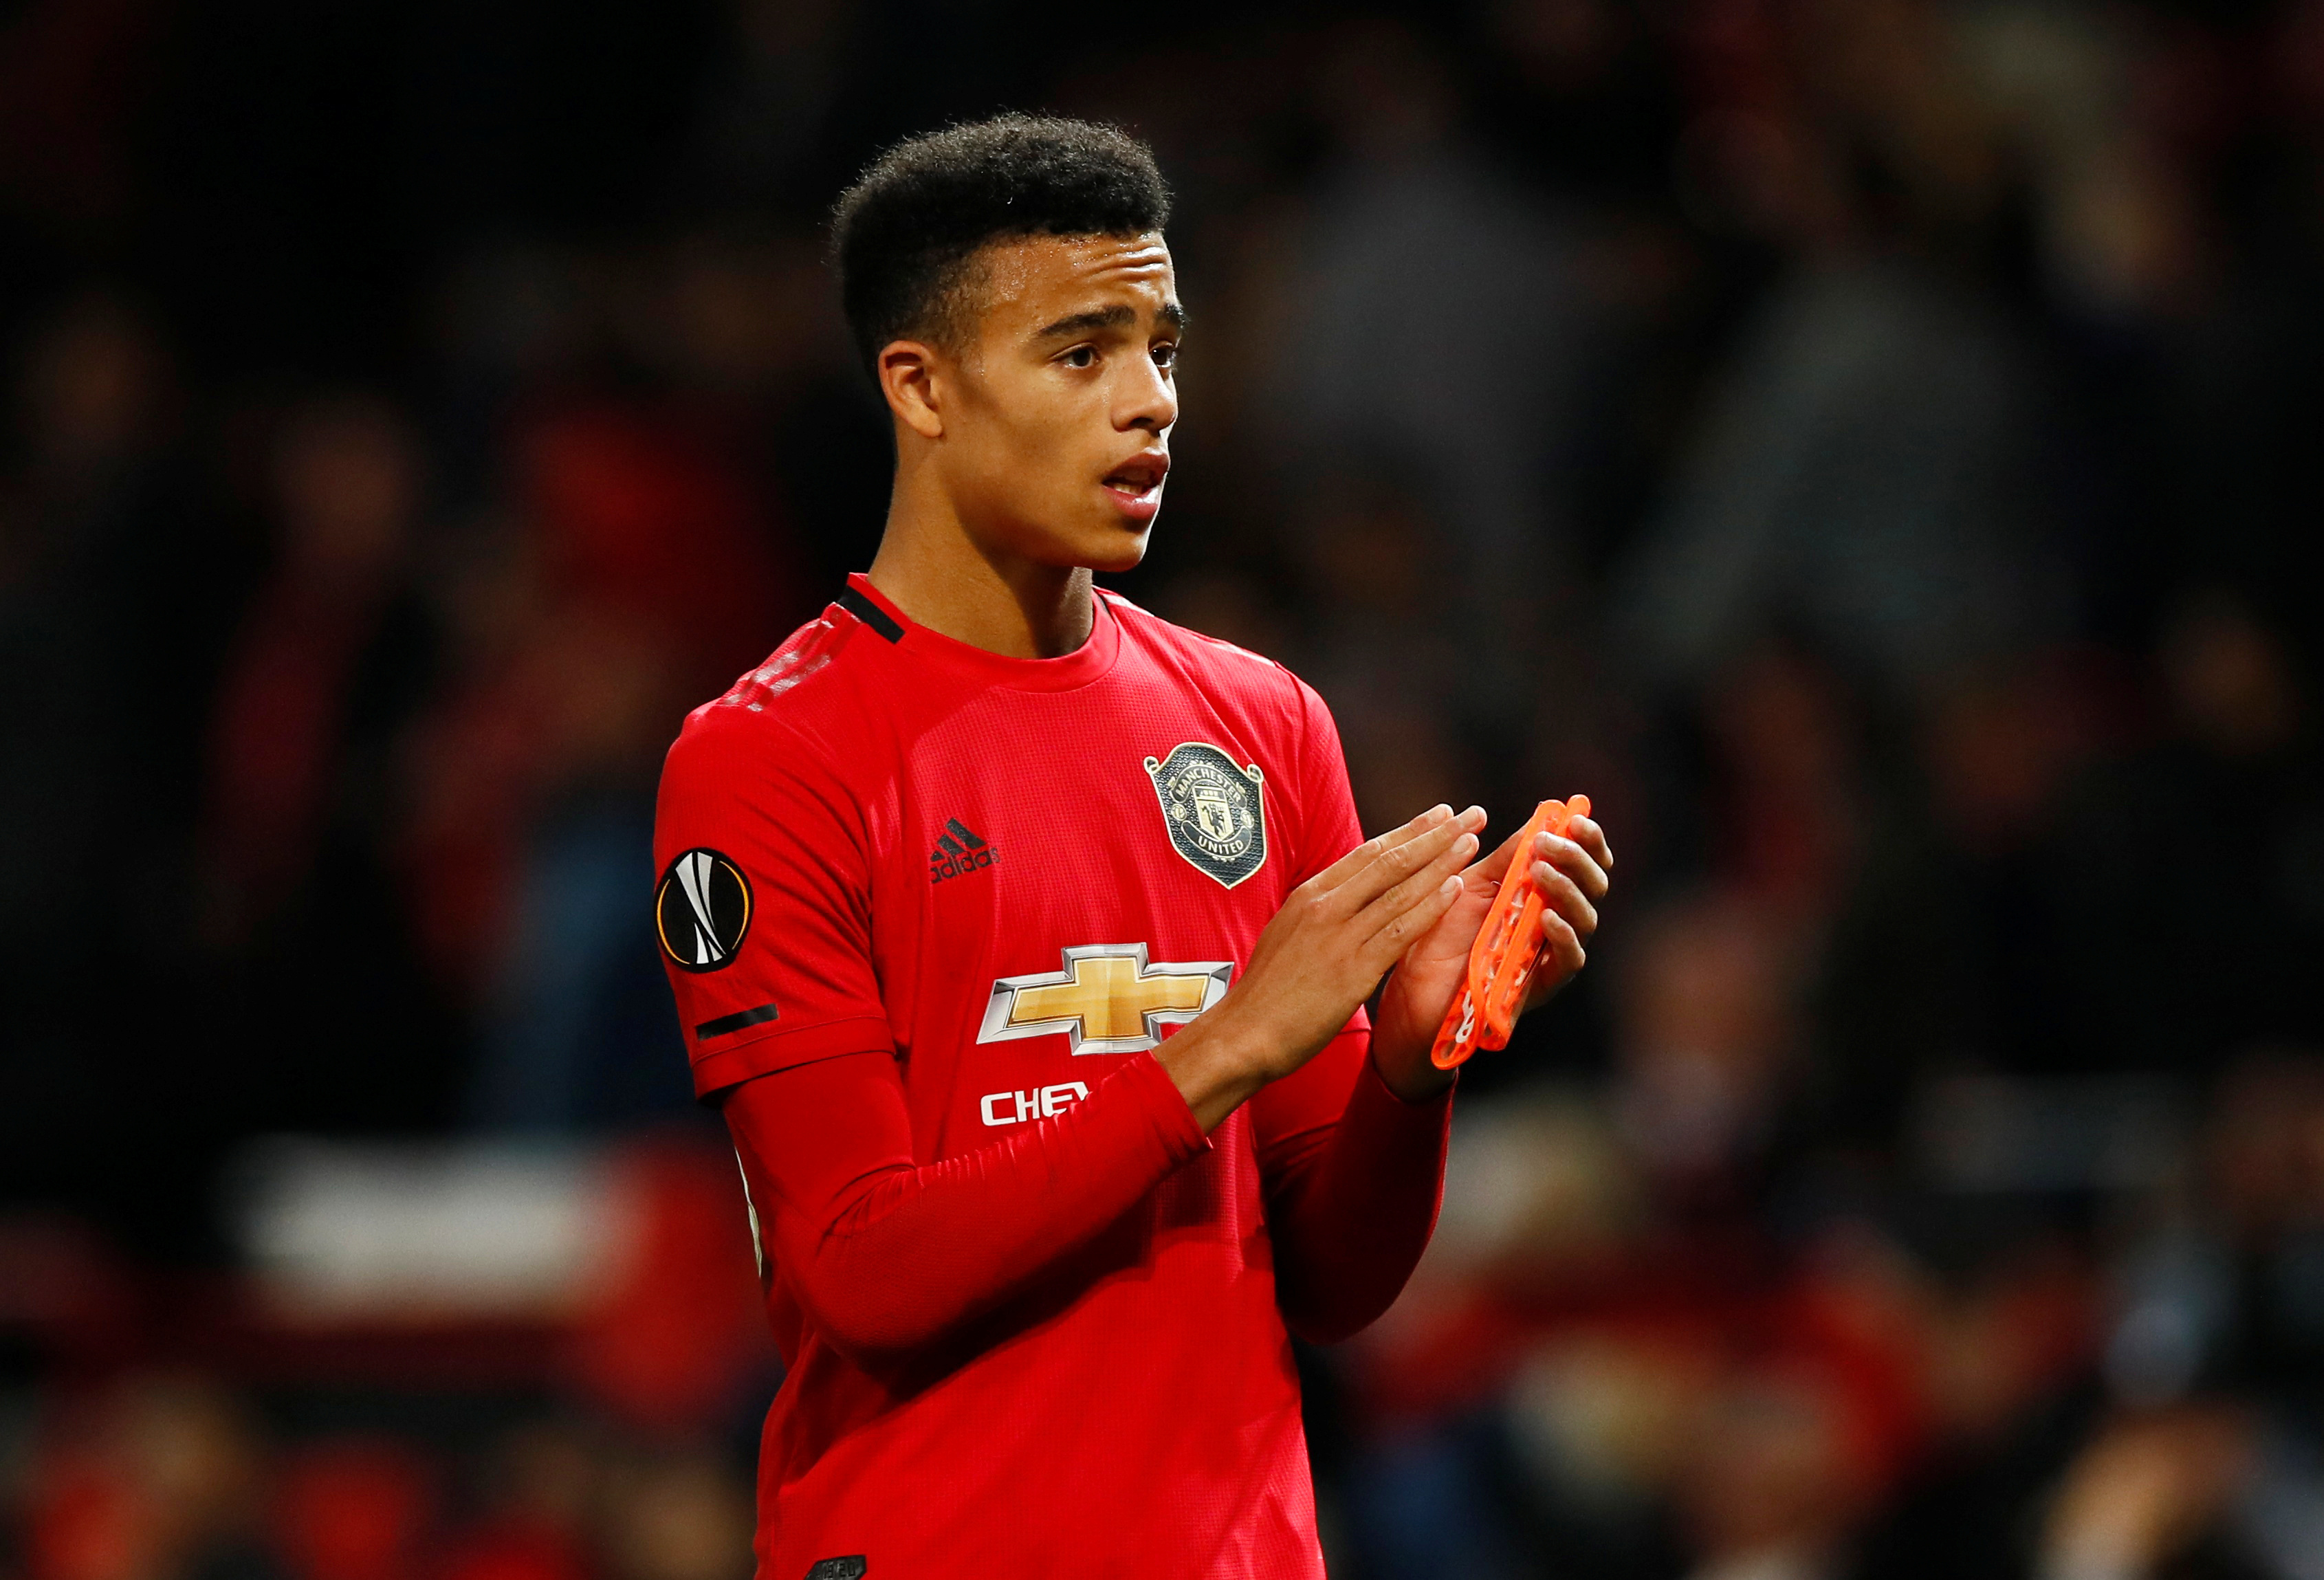 OGS guarantees more time for Greenwood